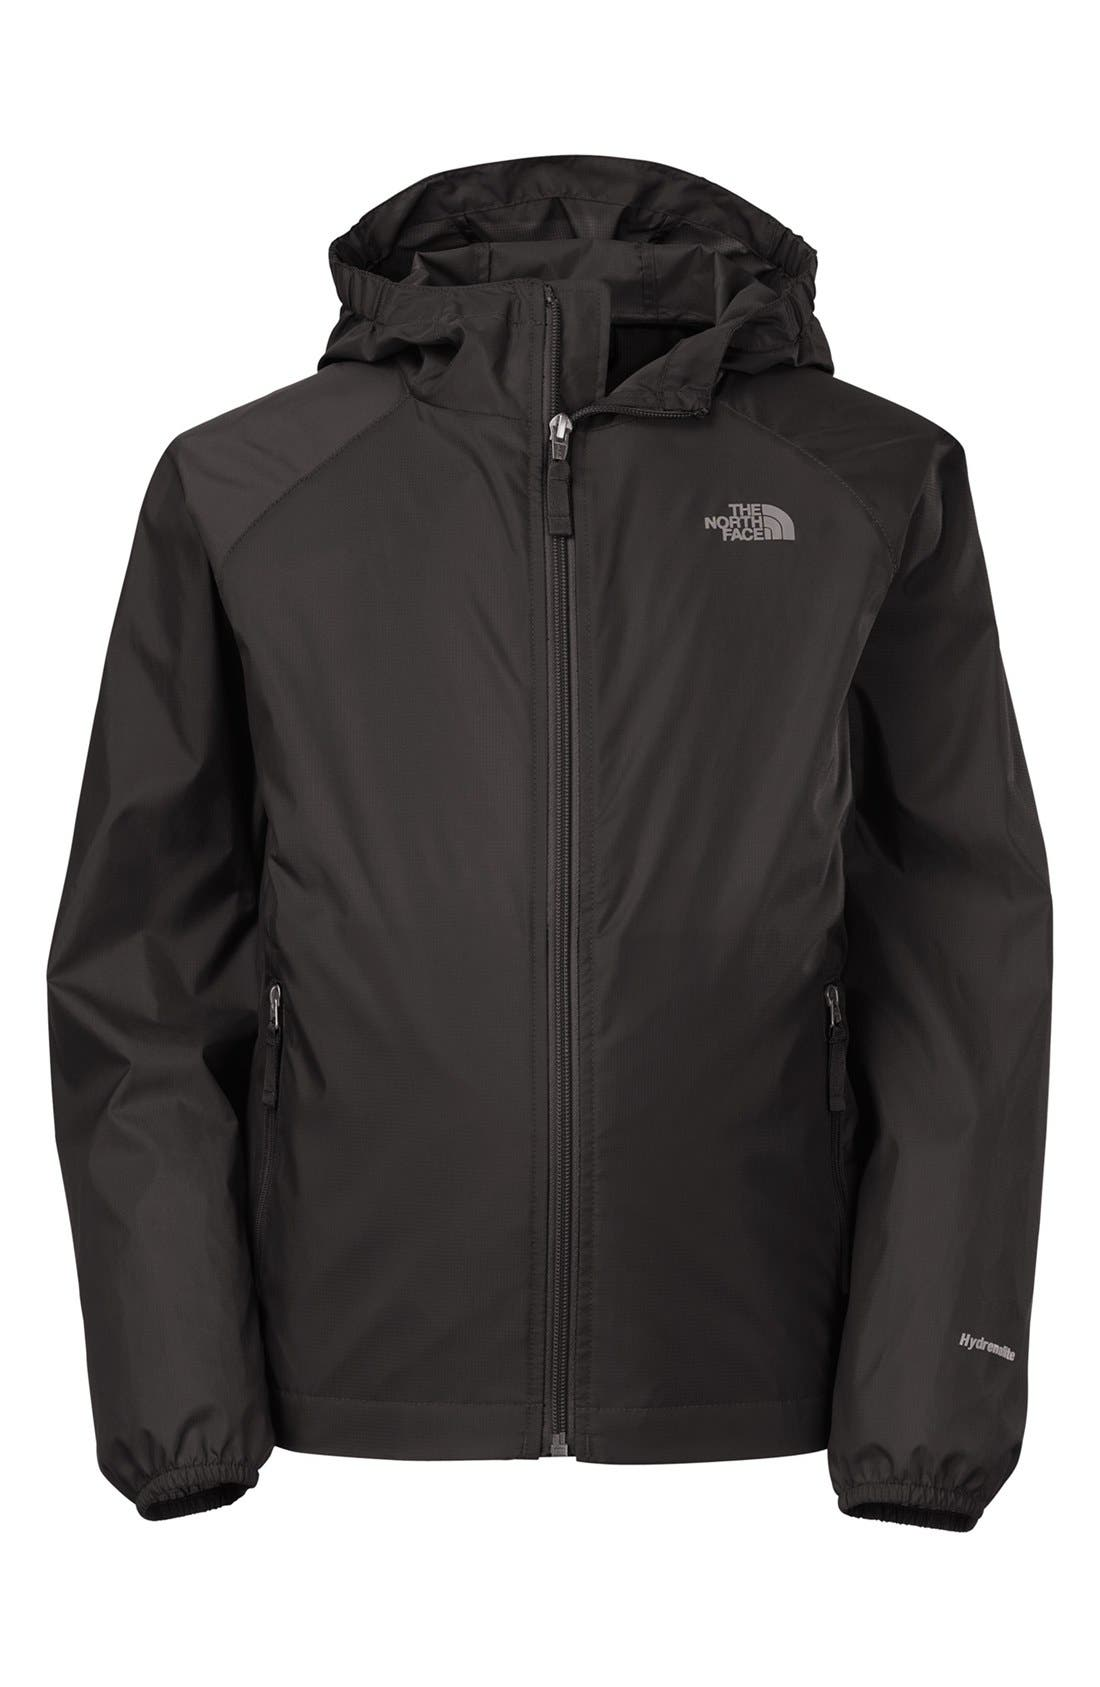 Alternate Image 1 Selected - The North Face 'Altimont' Windbreaker Hoodie (Little Boys & Big Boys)